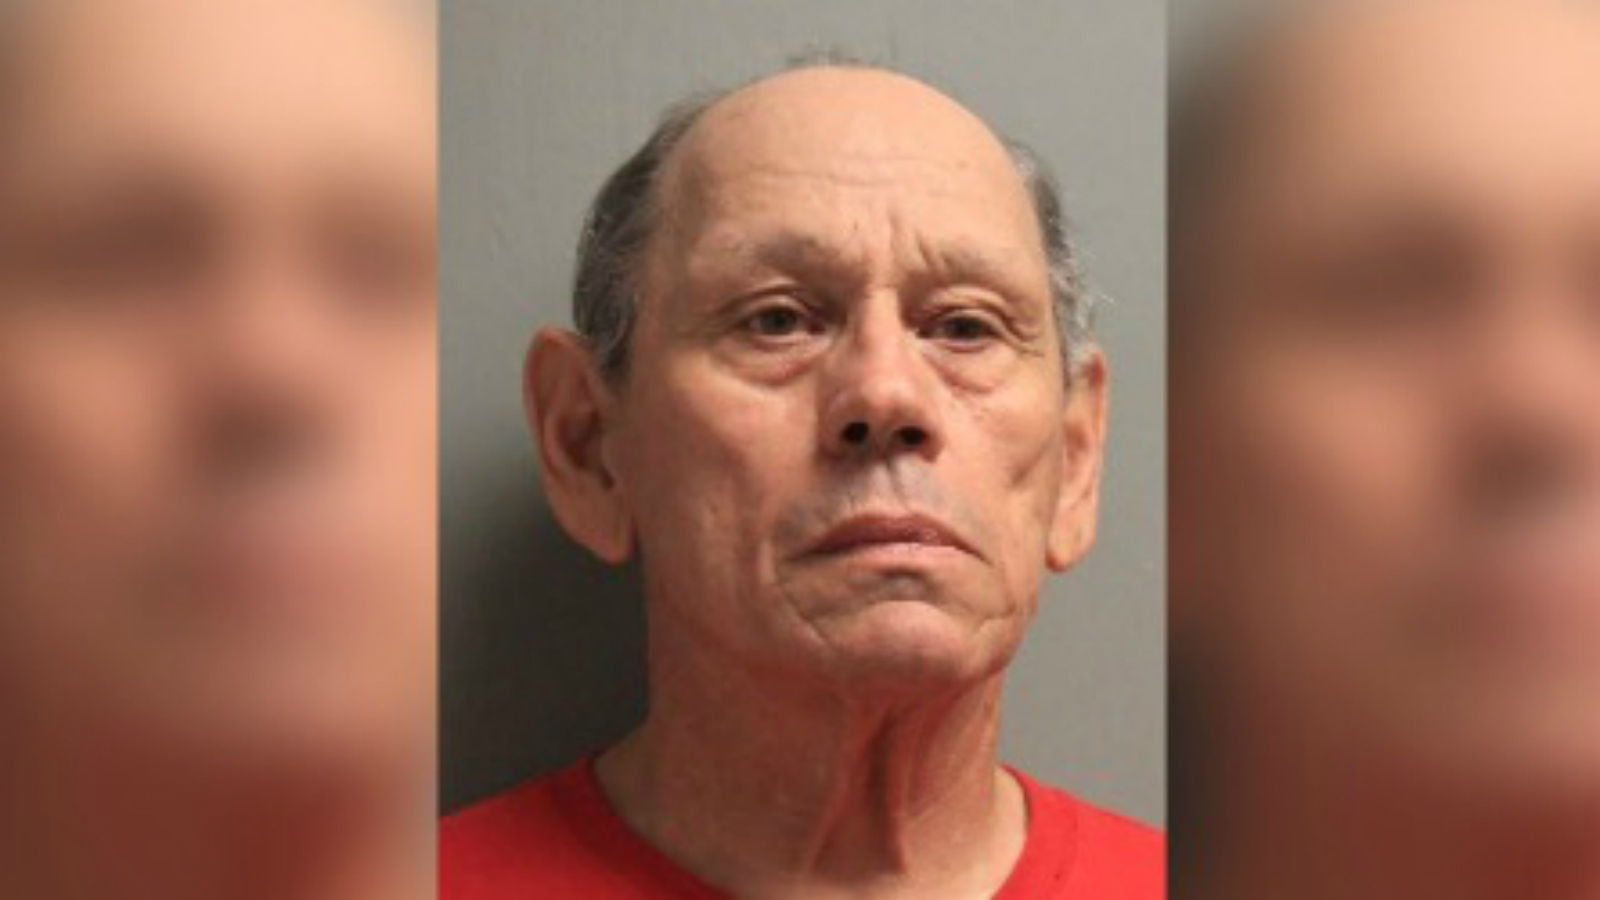 A 71-Year-Old Louisiana Man Has Been Arrested On 100 Counts Of Child Rape thumbnail